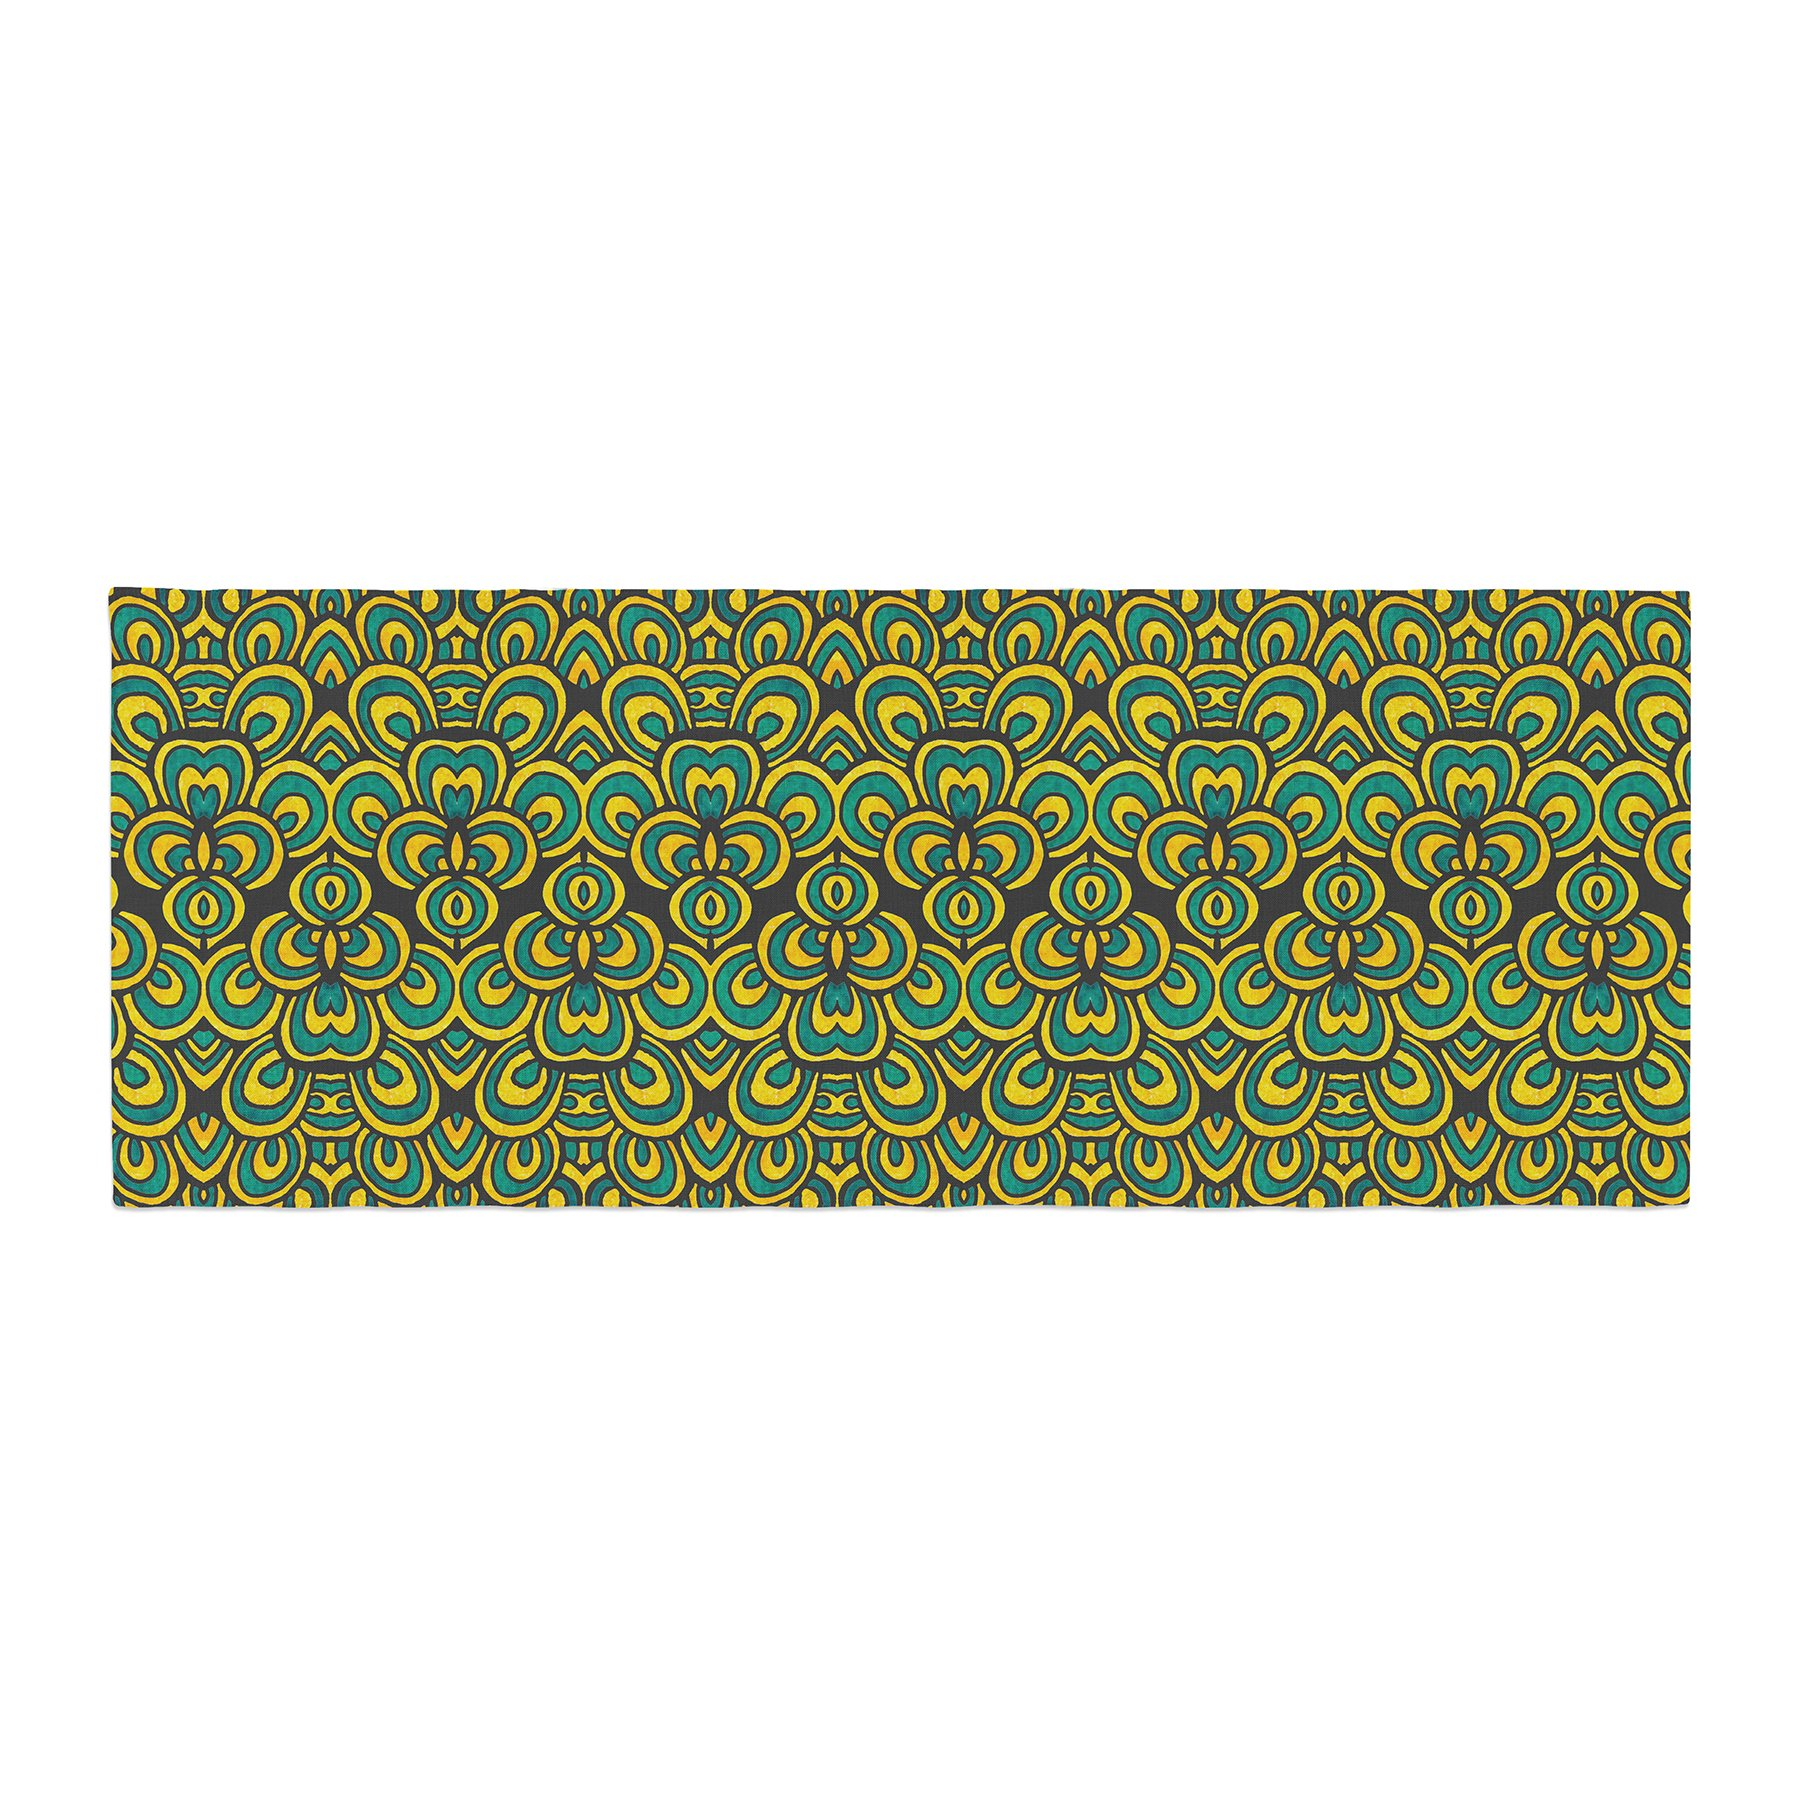 Kess InHouse Pom Graphic Design Animal Temple II Bed Runner, 34'' x 86''